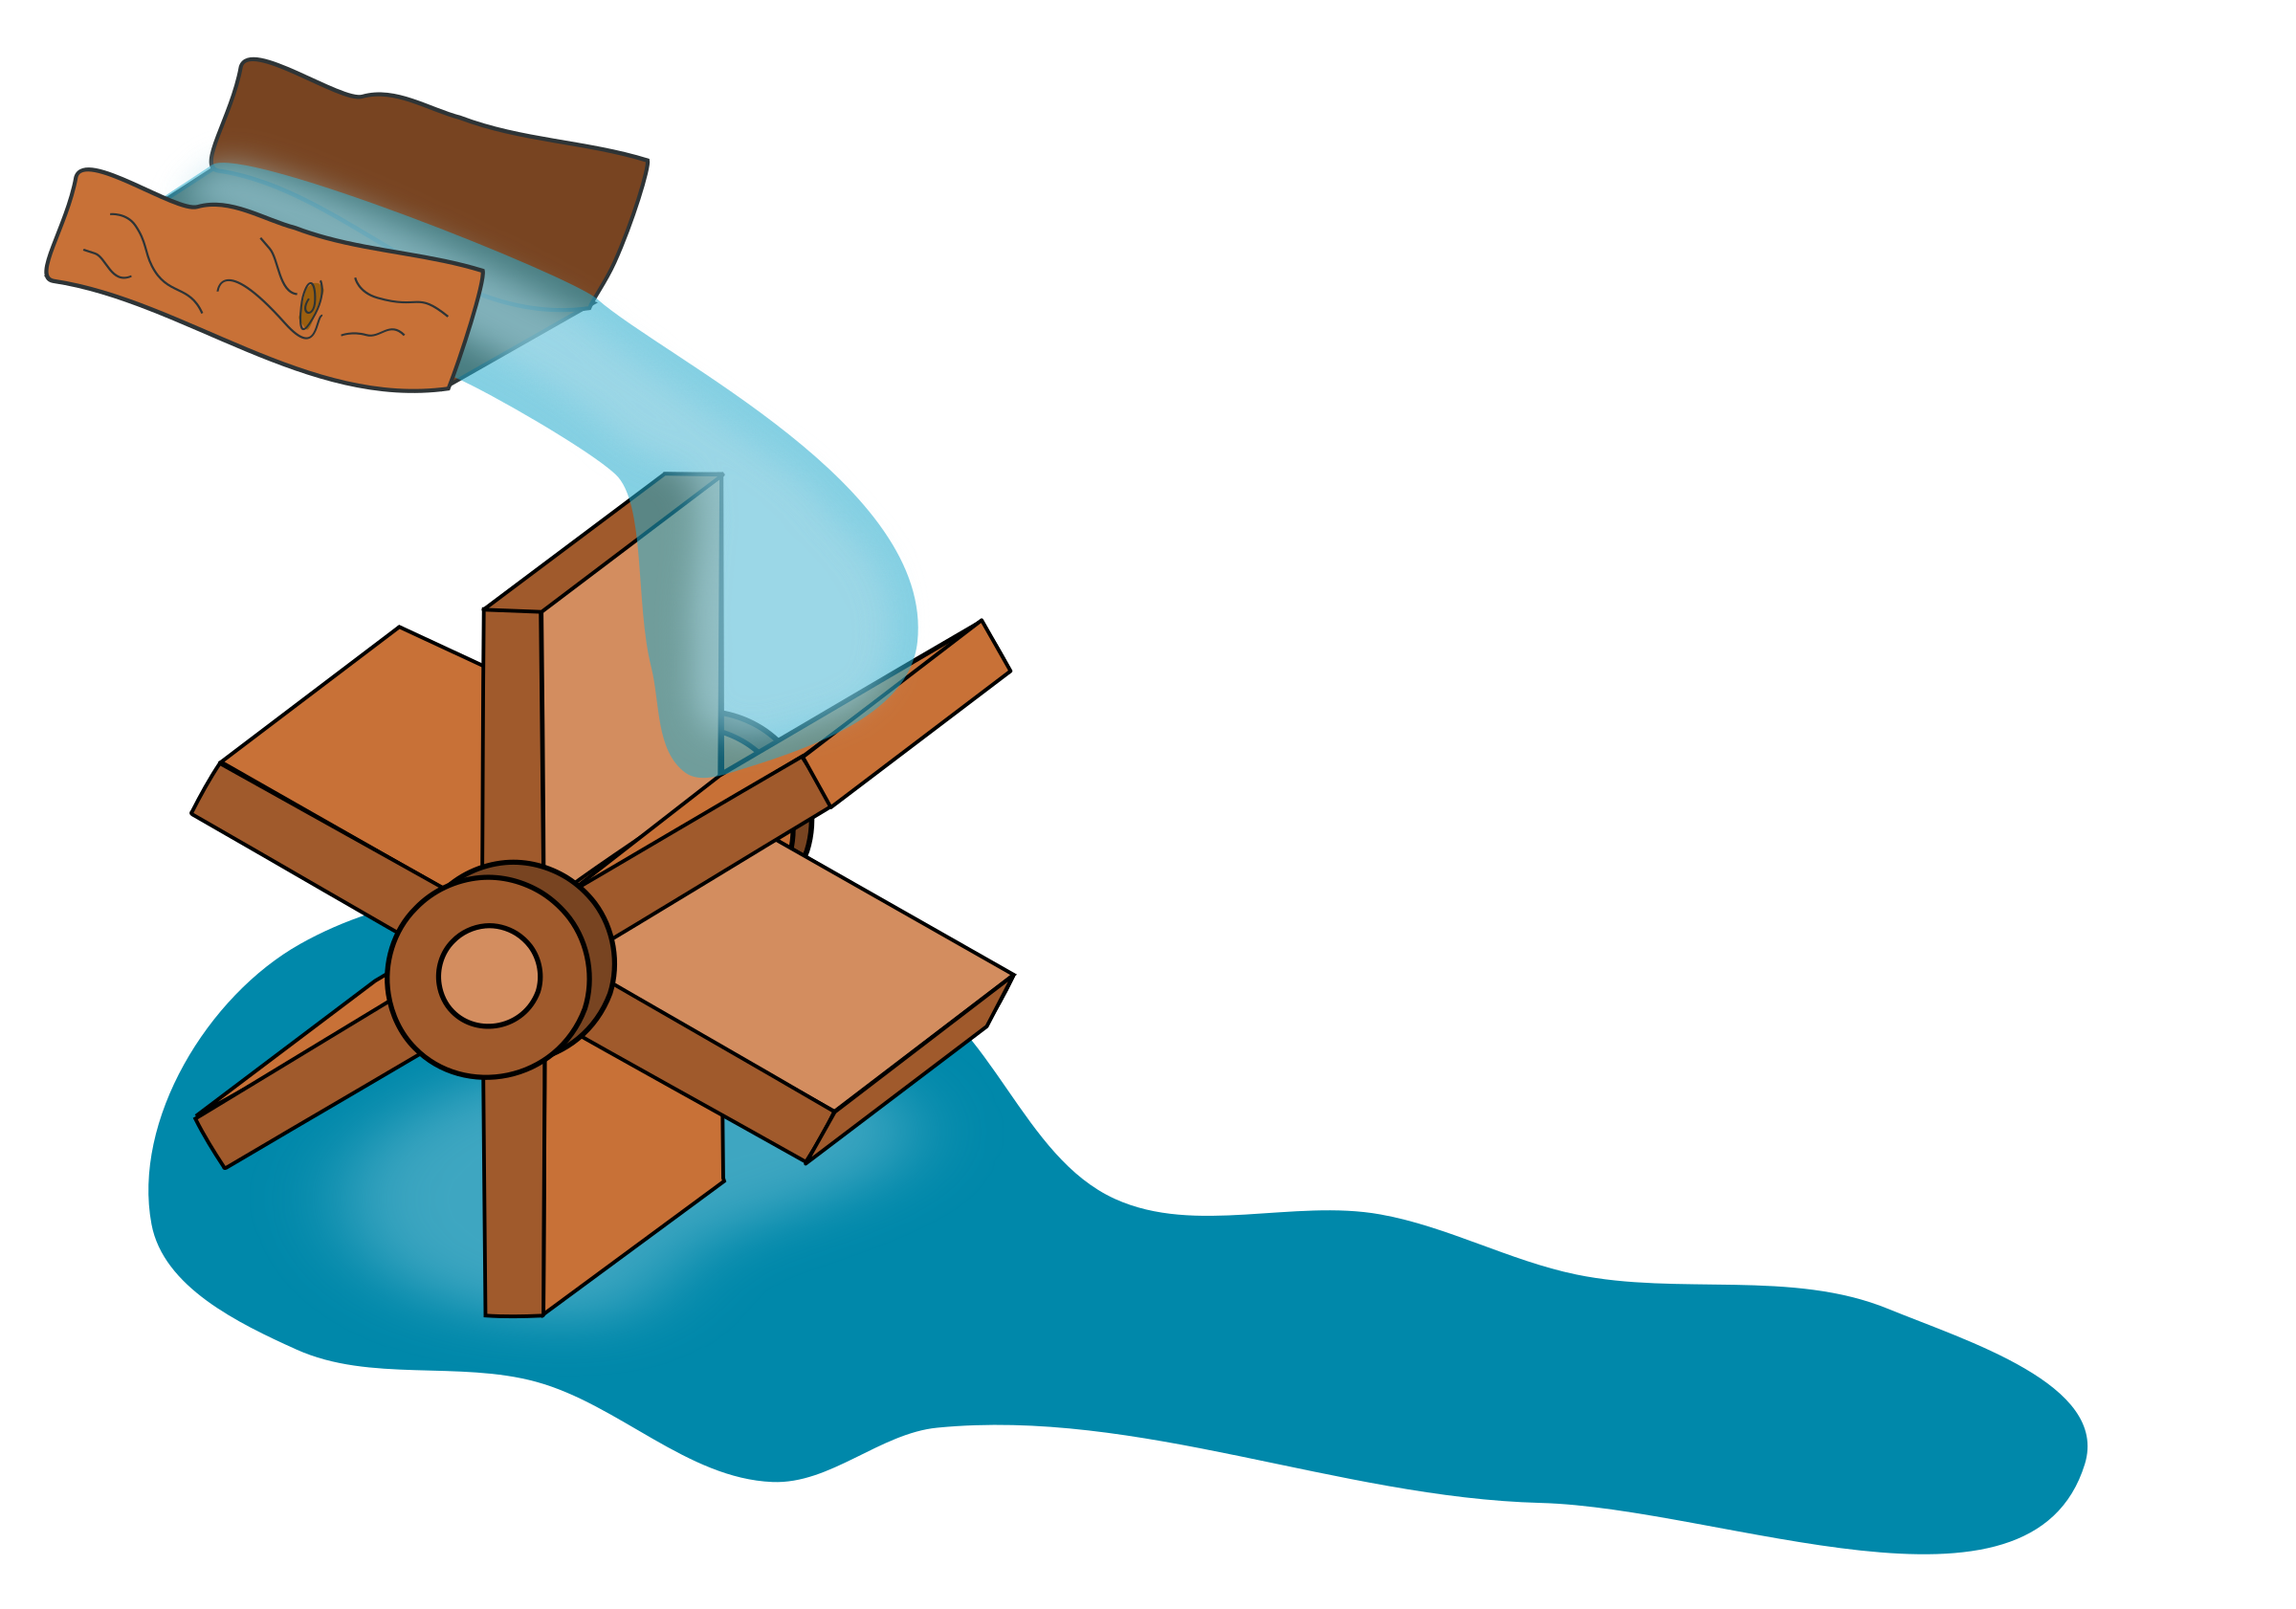 water wheel by Juhele